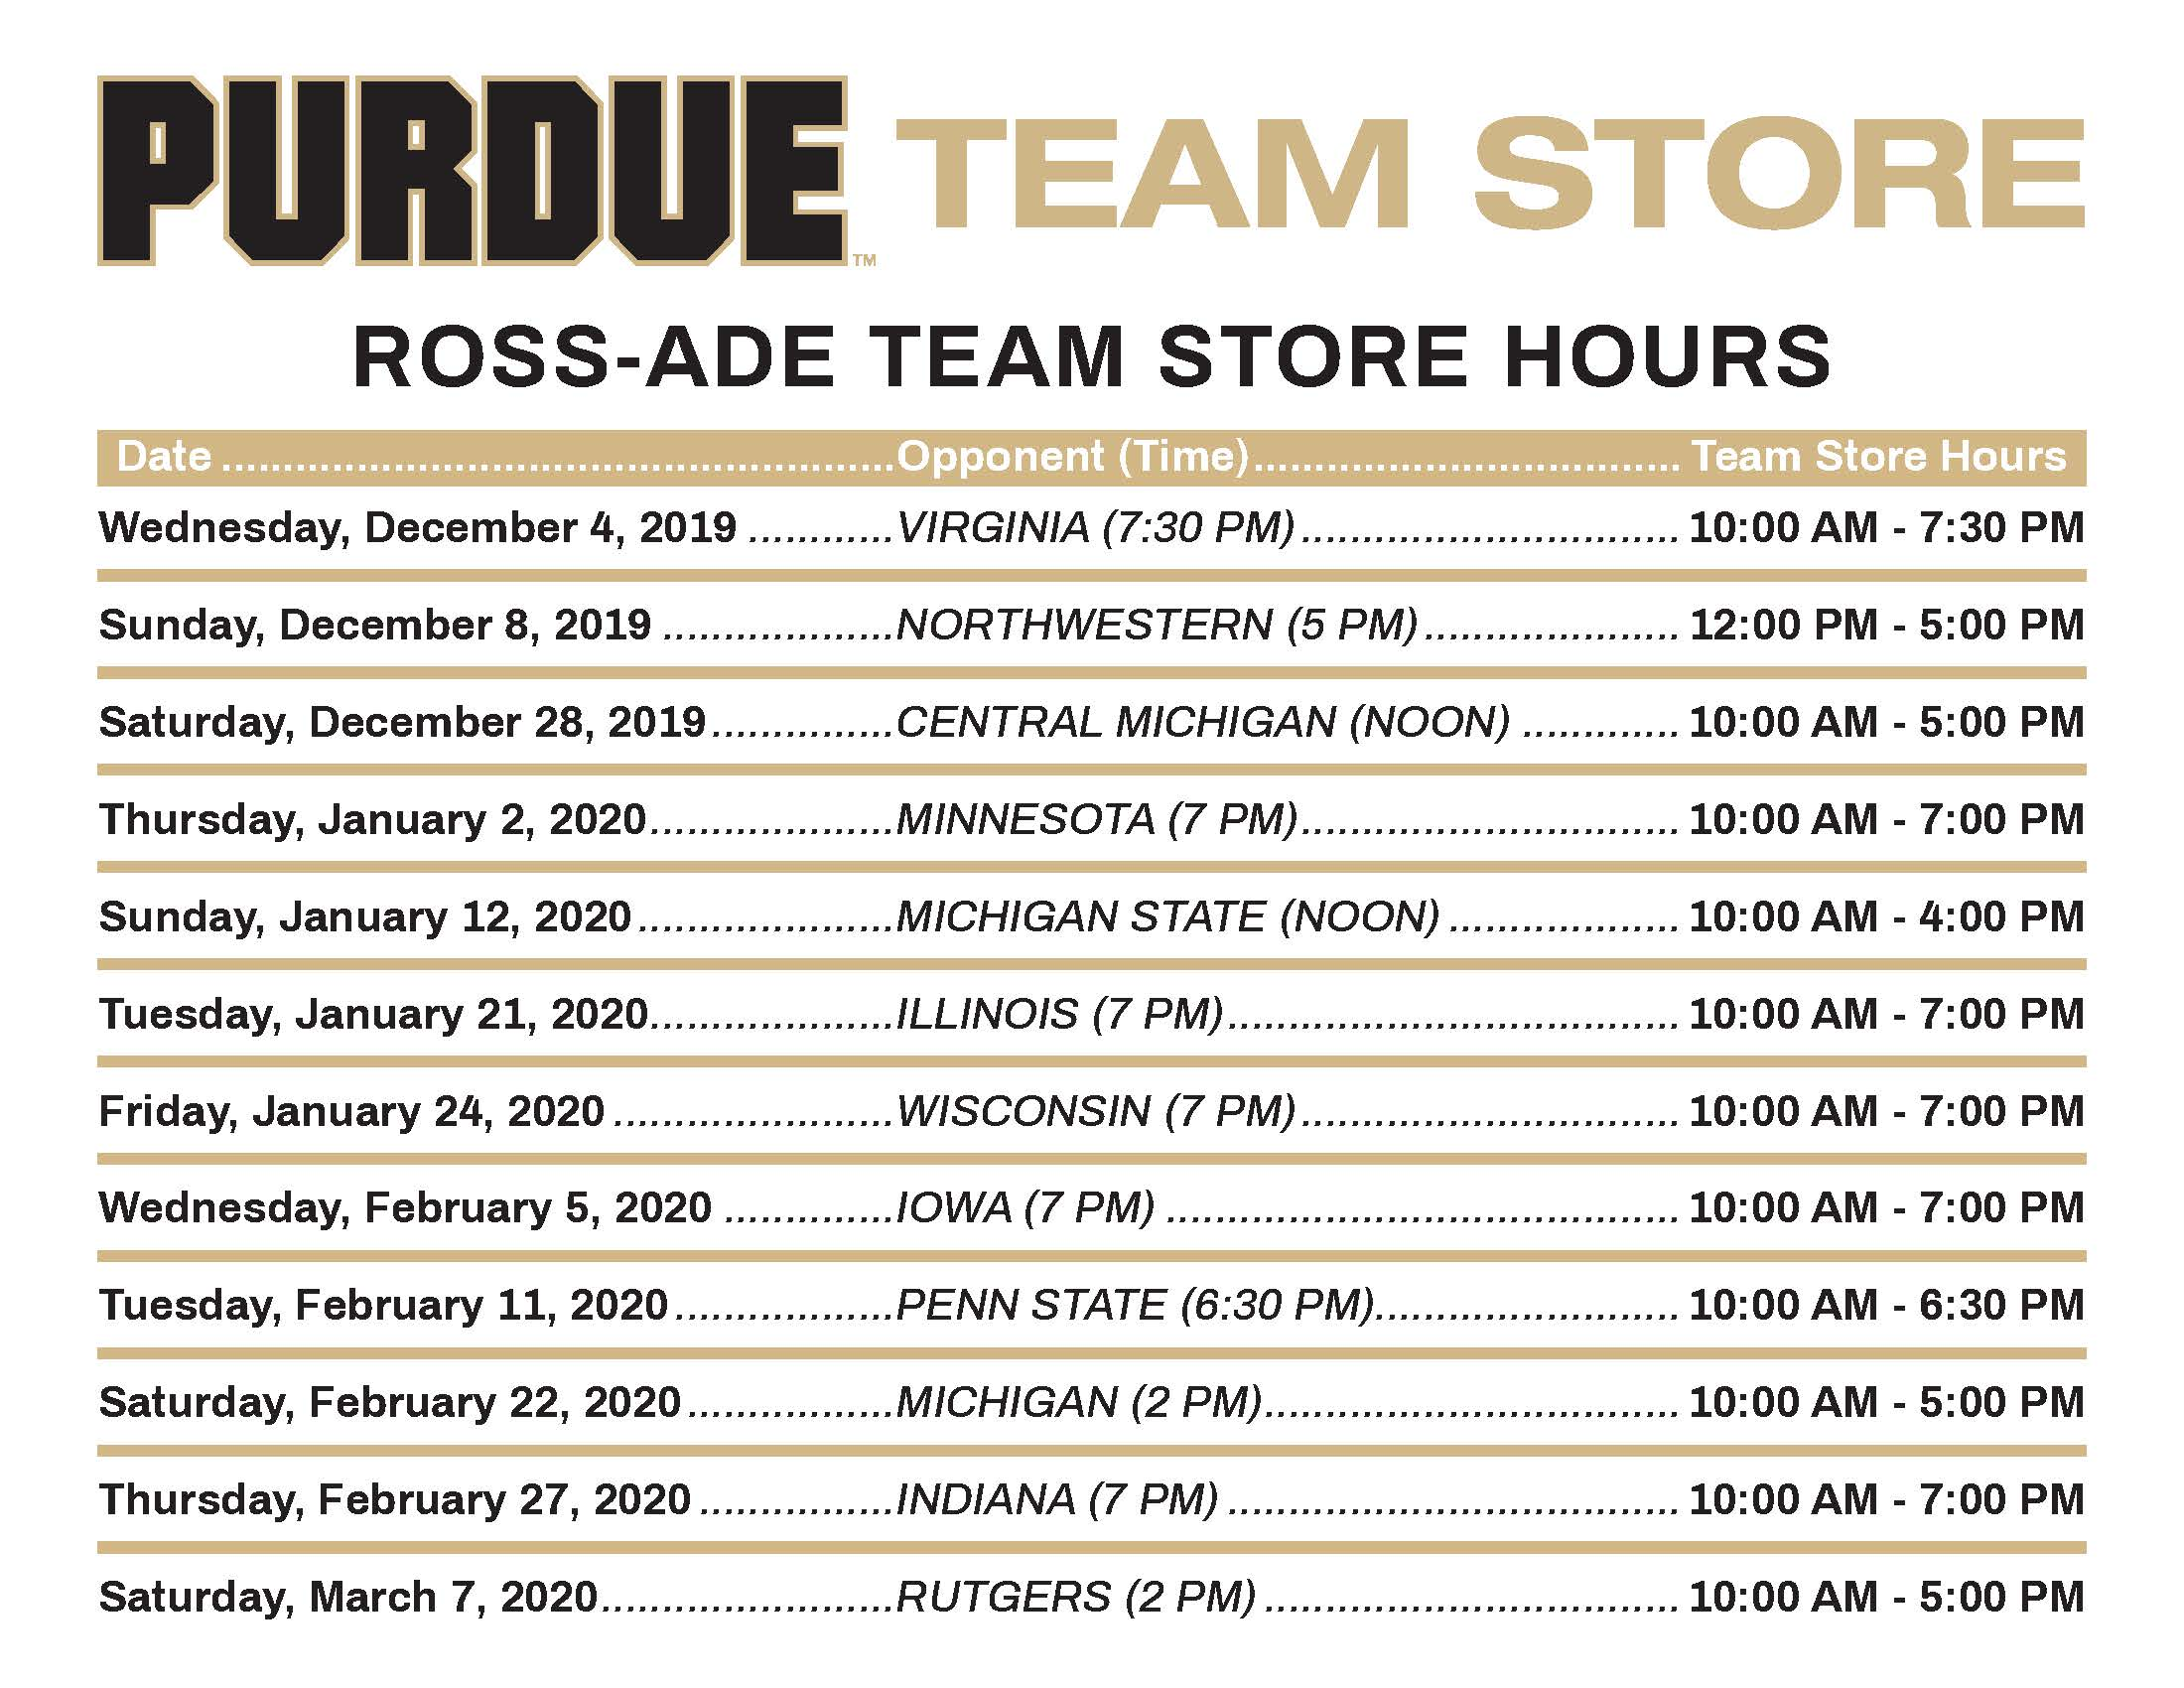 Ross-Ade Team Store Hours for Basketball Games